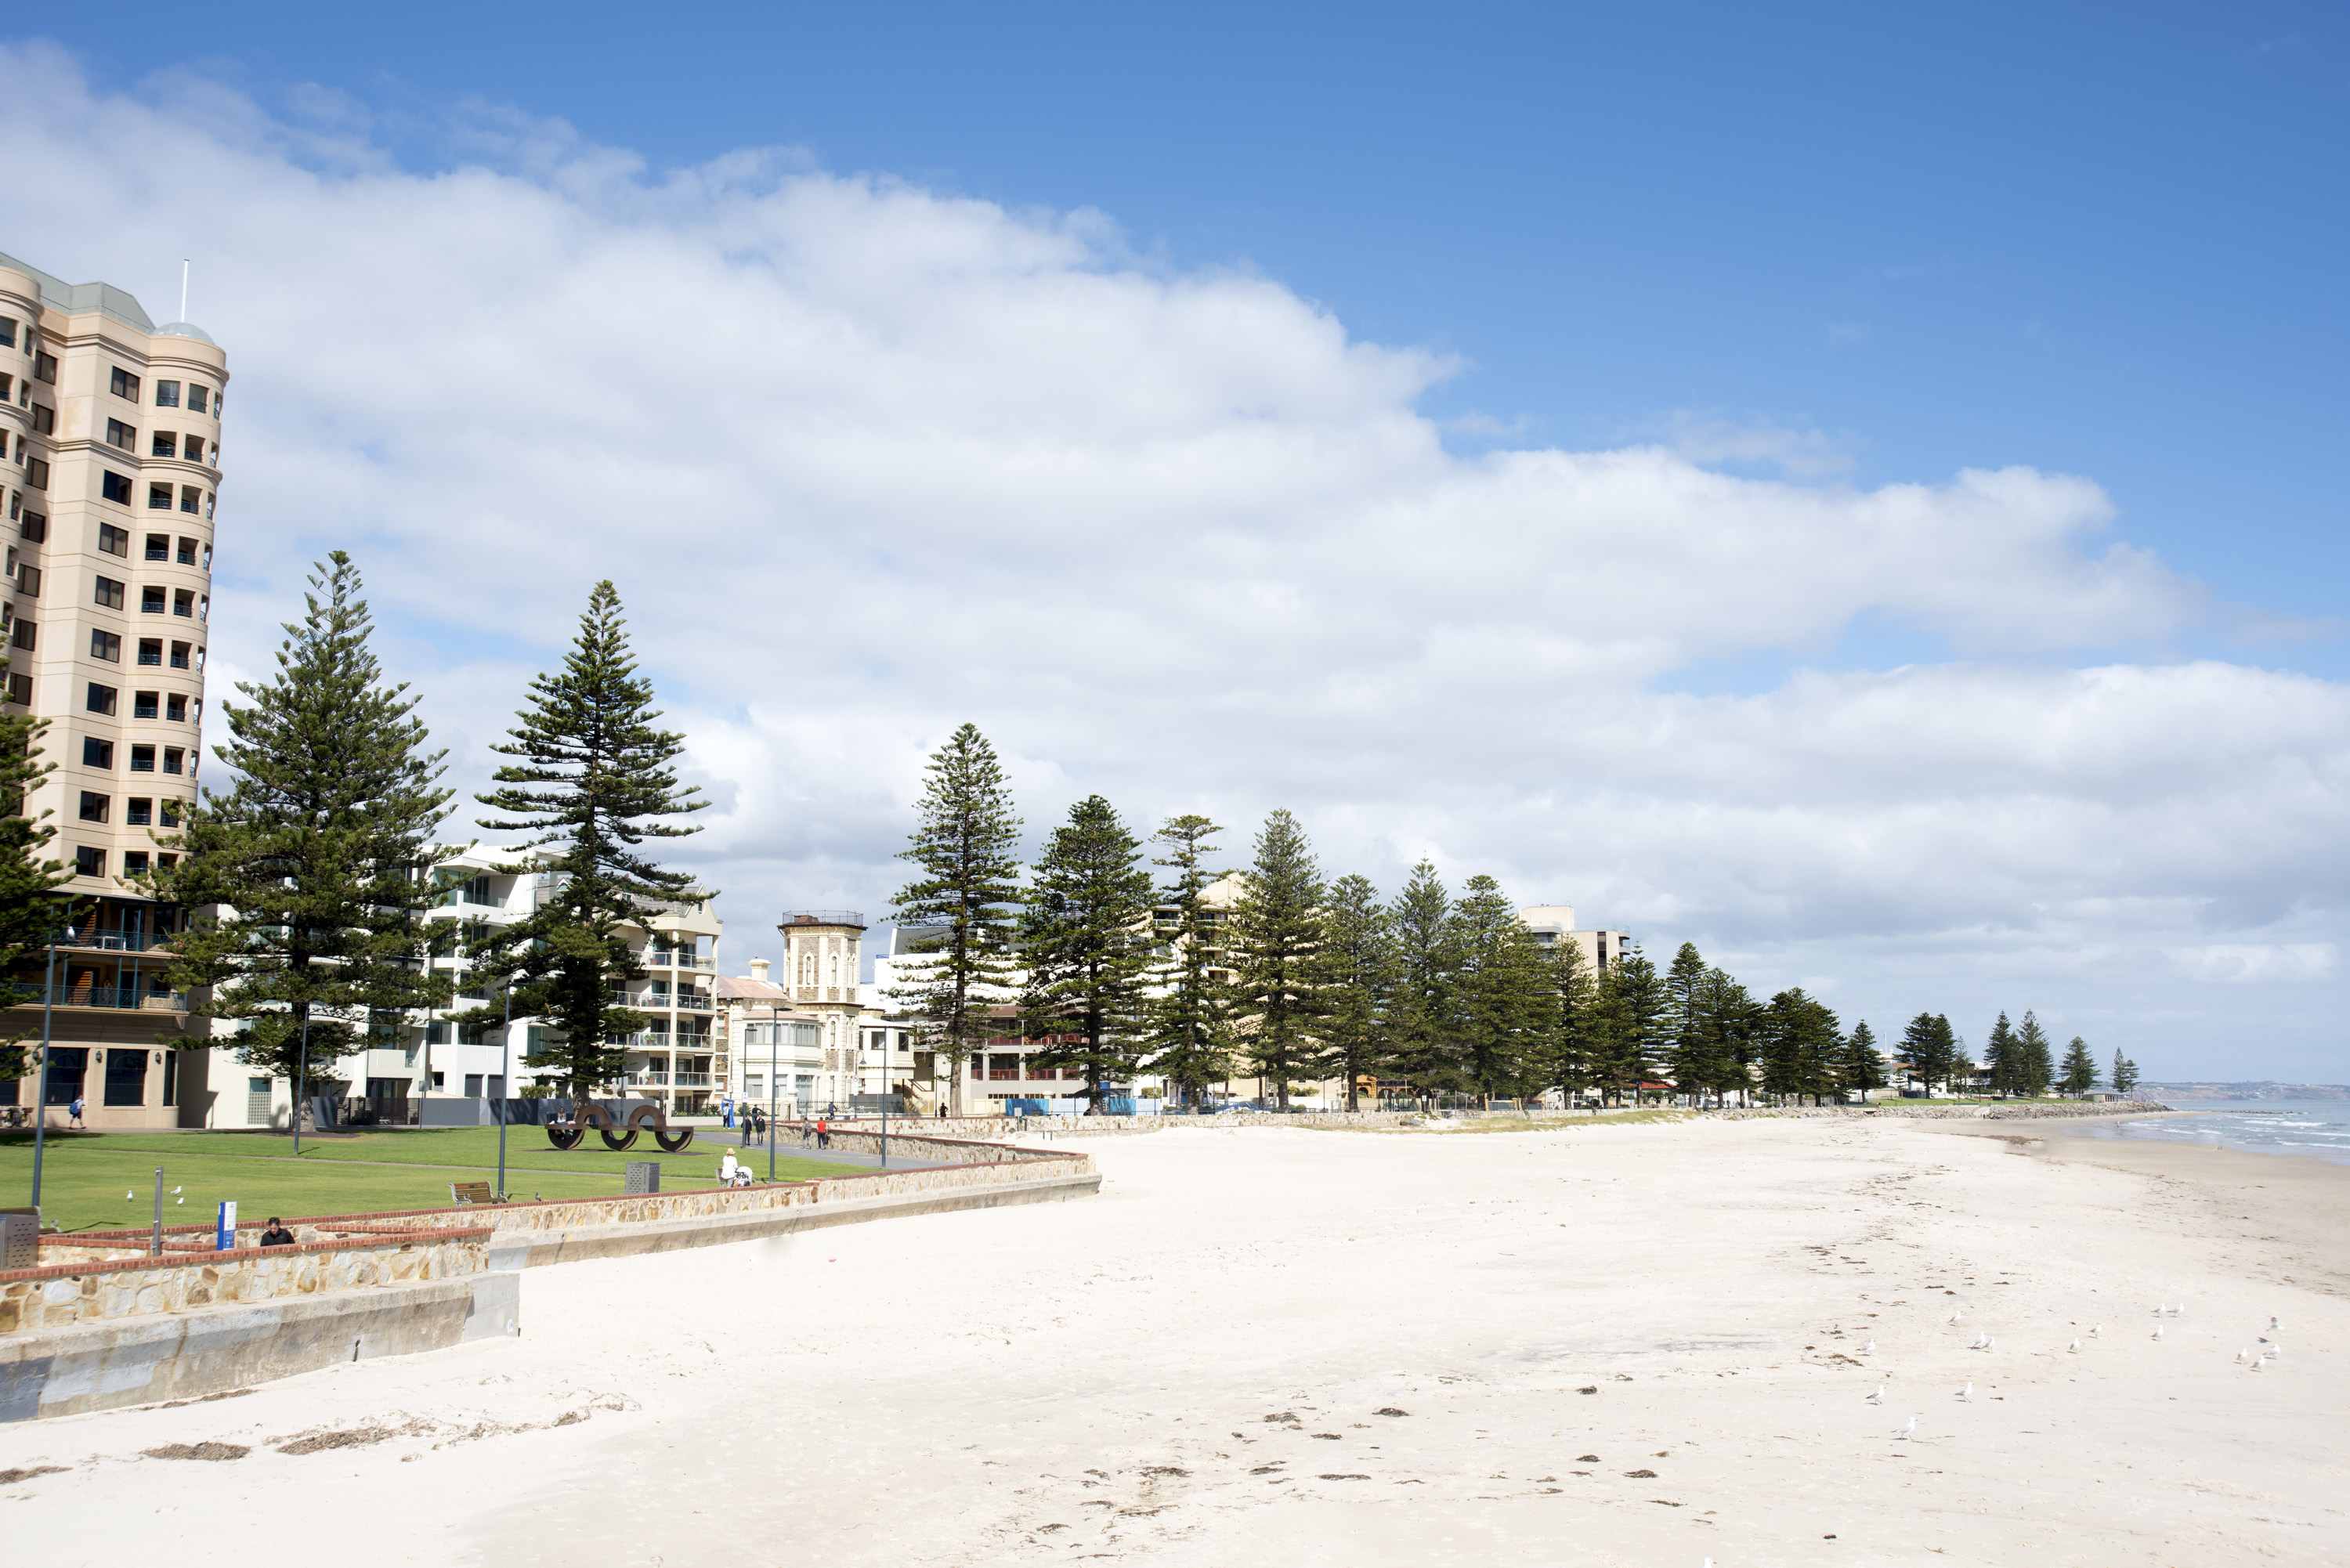 The deserted sandy tropical beach at Glenelg, Adelaide, South Australia overlooked by apartment buildings and a row of pine trees